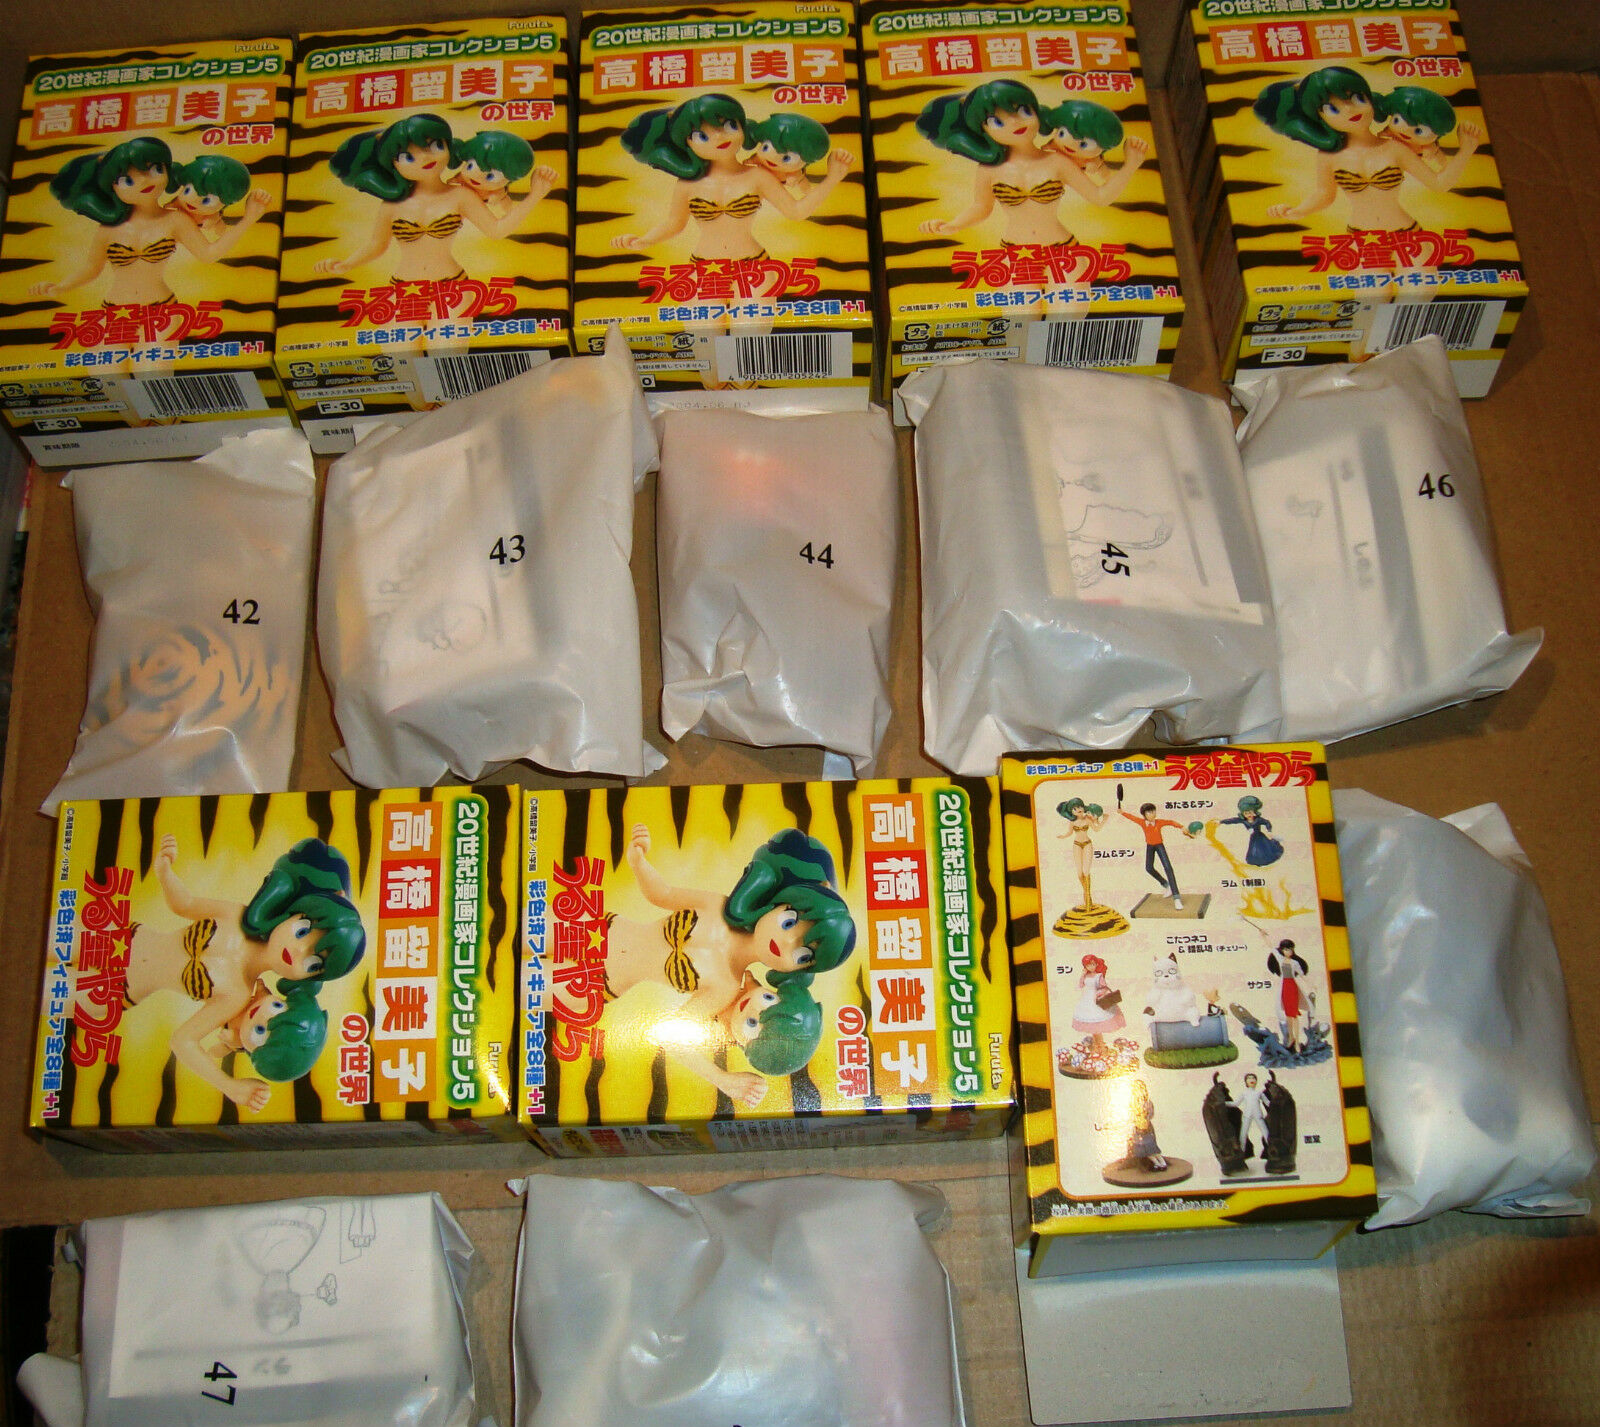 URUSEI YATSURA FIGURE COLLECTION SET 8 PZ FURUTA 2003    (LAMU' うる星やつら) 87c541